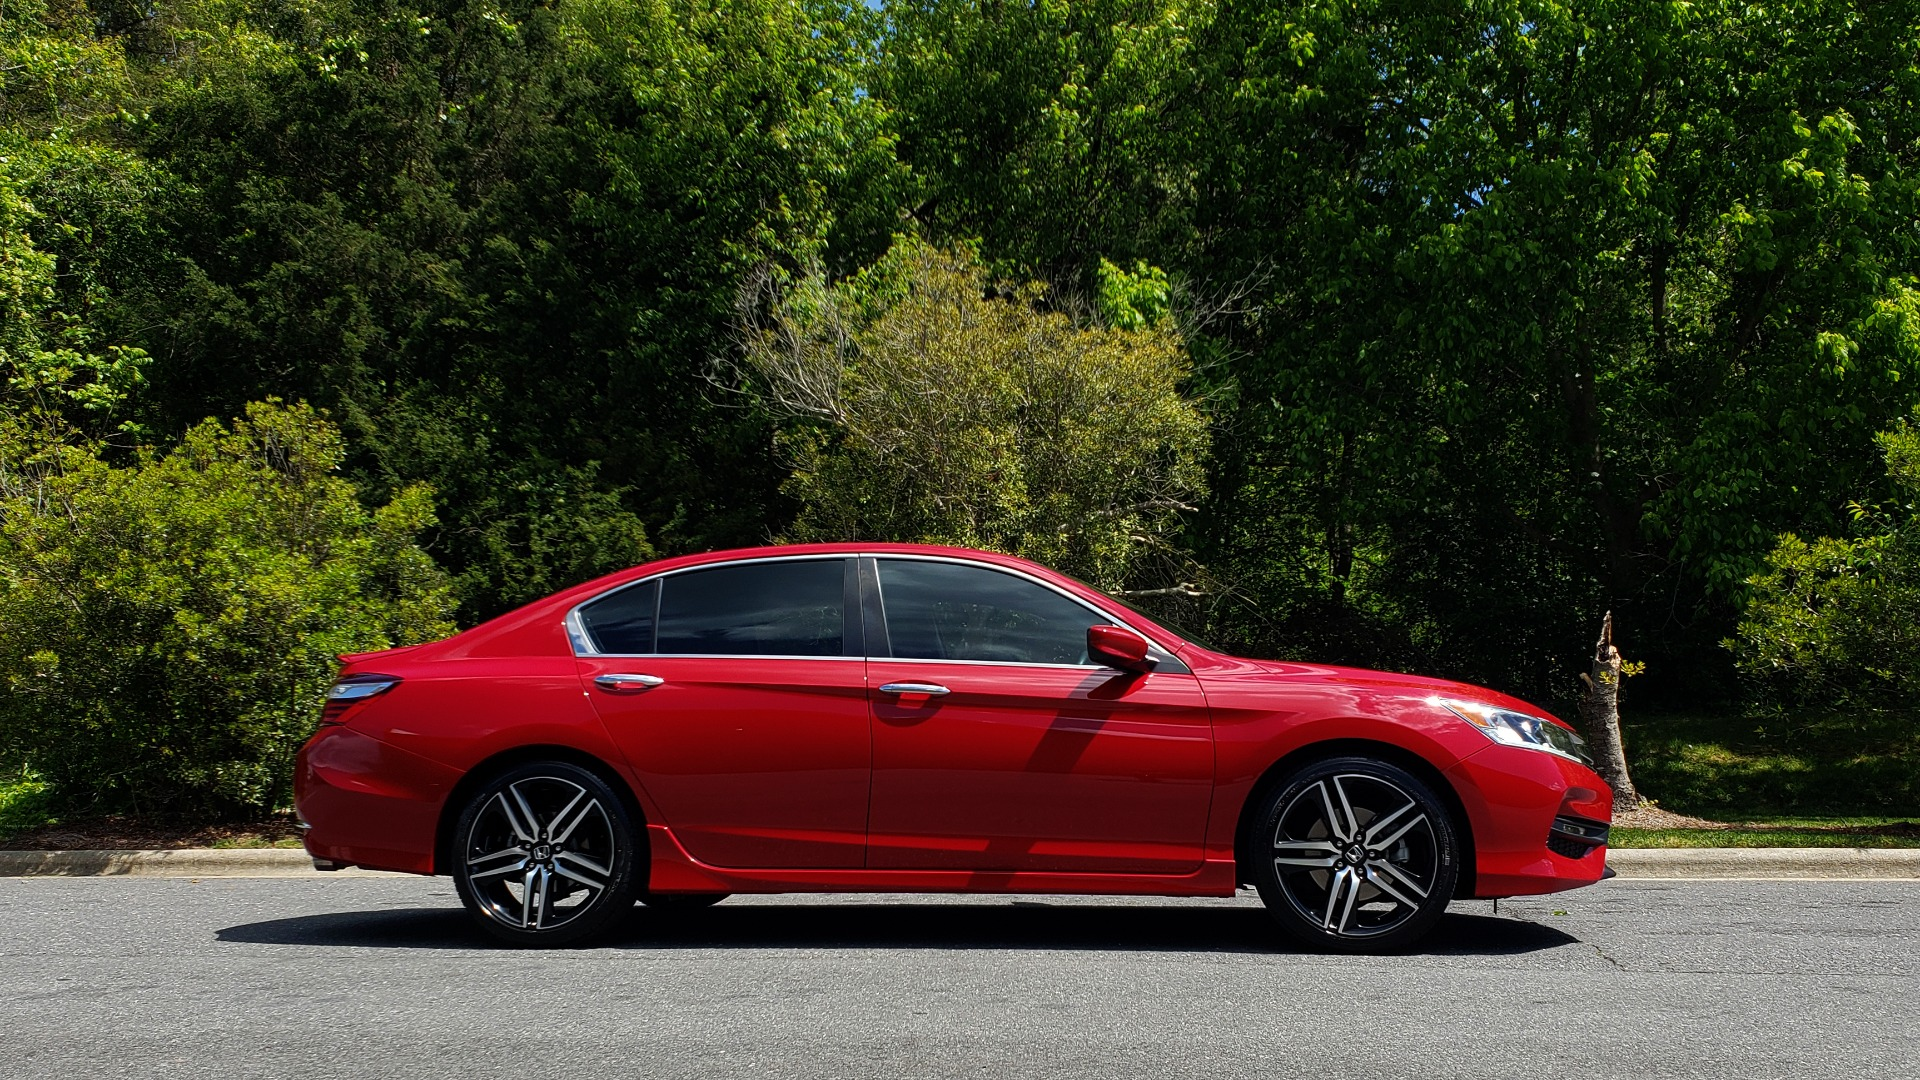 Used 2016 Honda ACCORD SEDAN SPORT / 4-CYL / CVT TRANS / SPOILER / 19IN ALLOY WHEELS for sale Sold at Formula Imports in Charlotte NC 28227 5